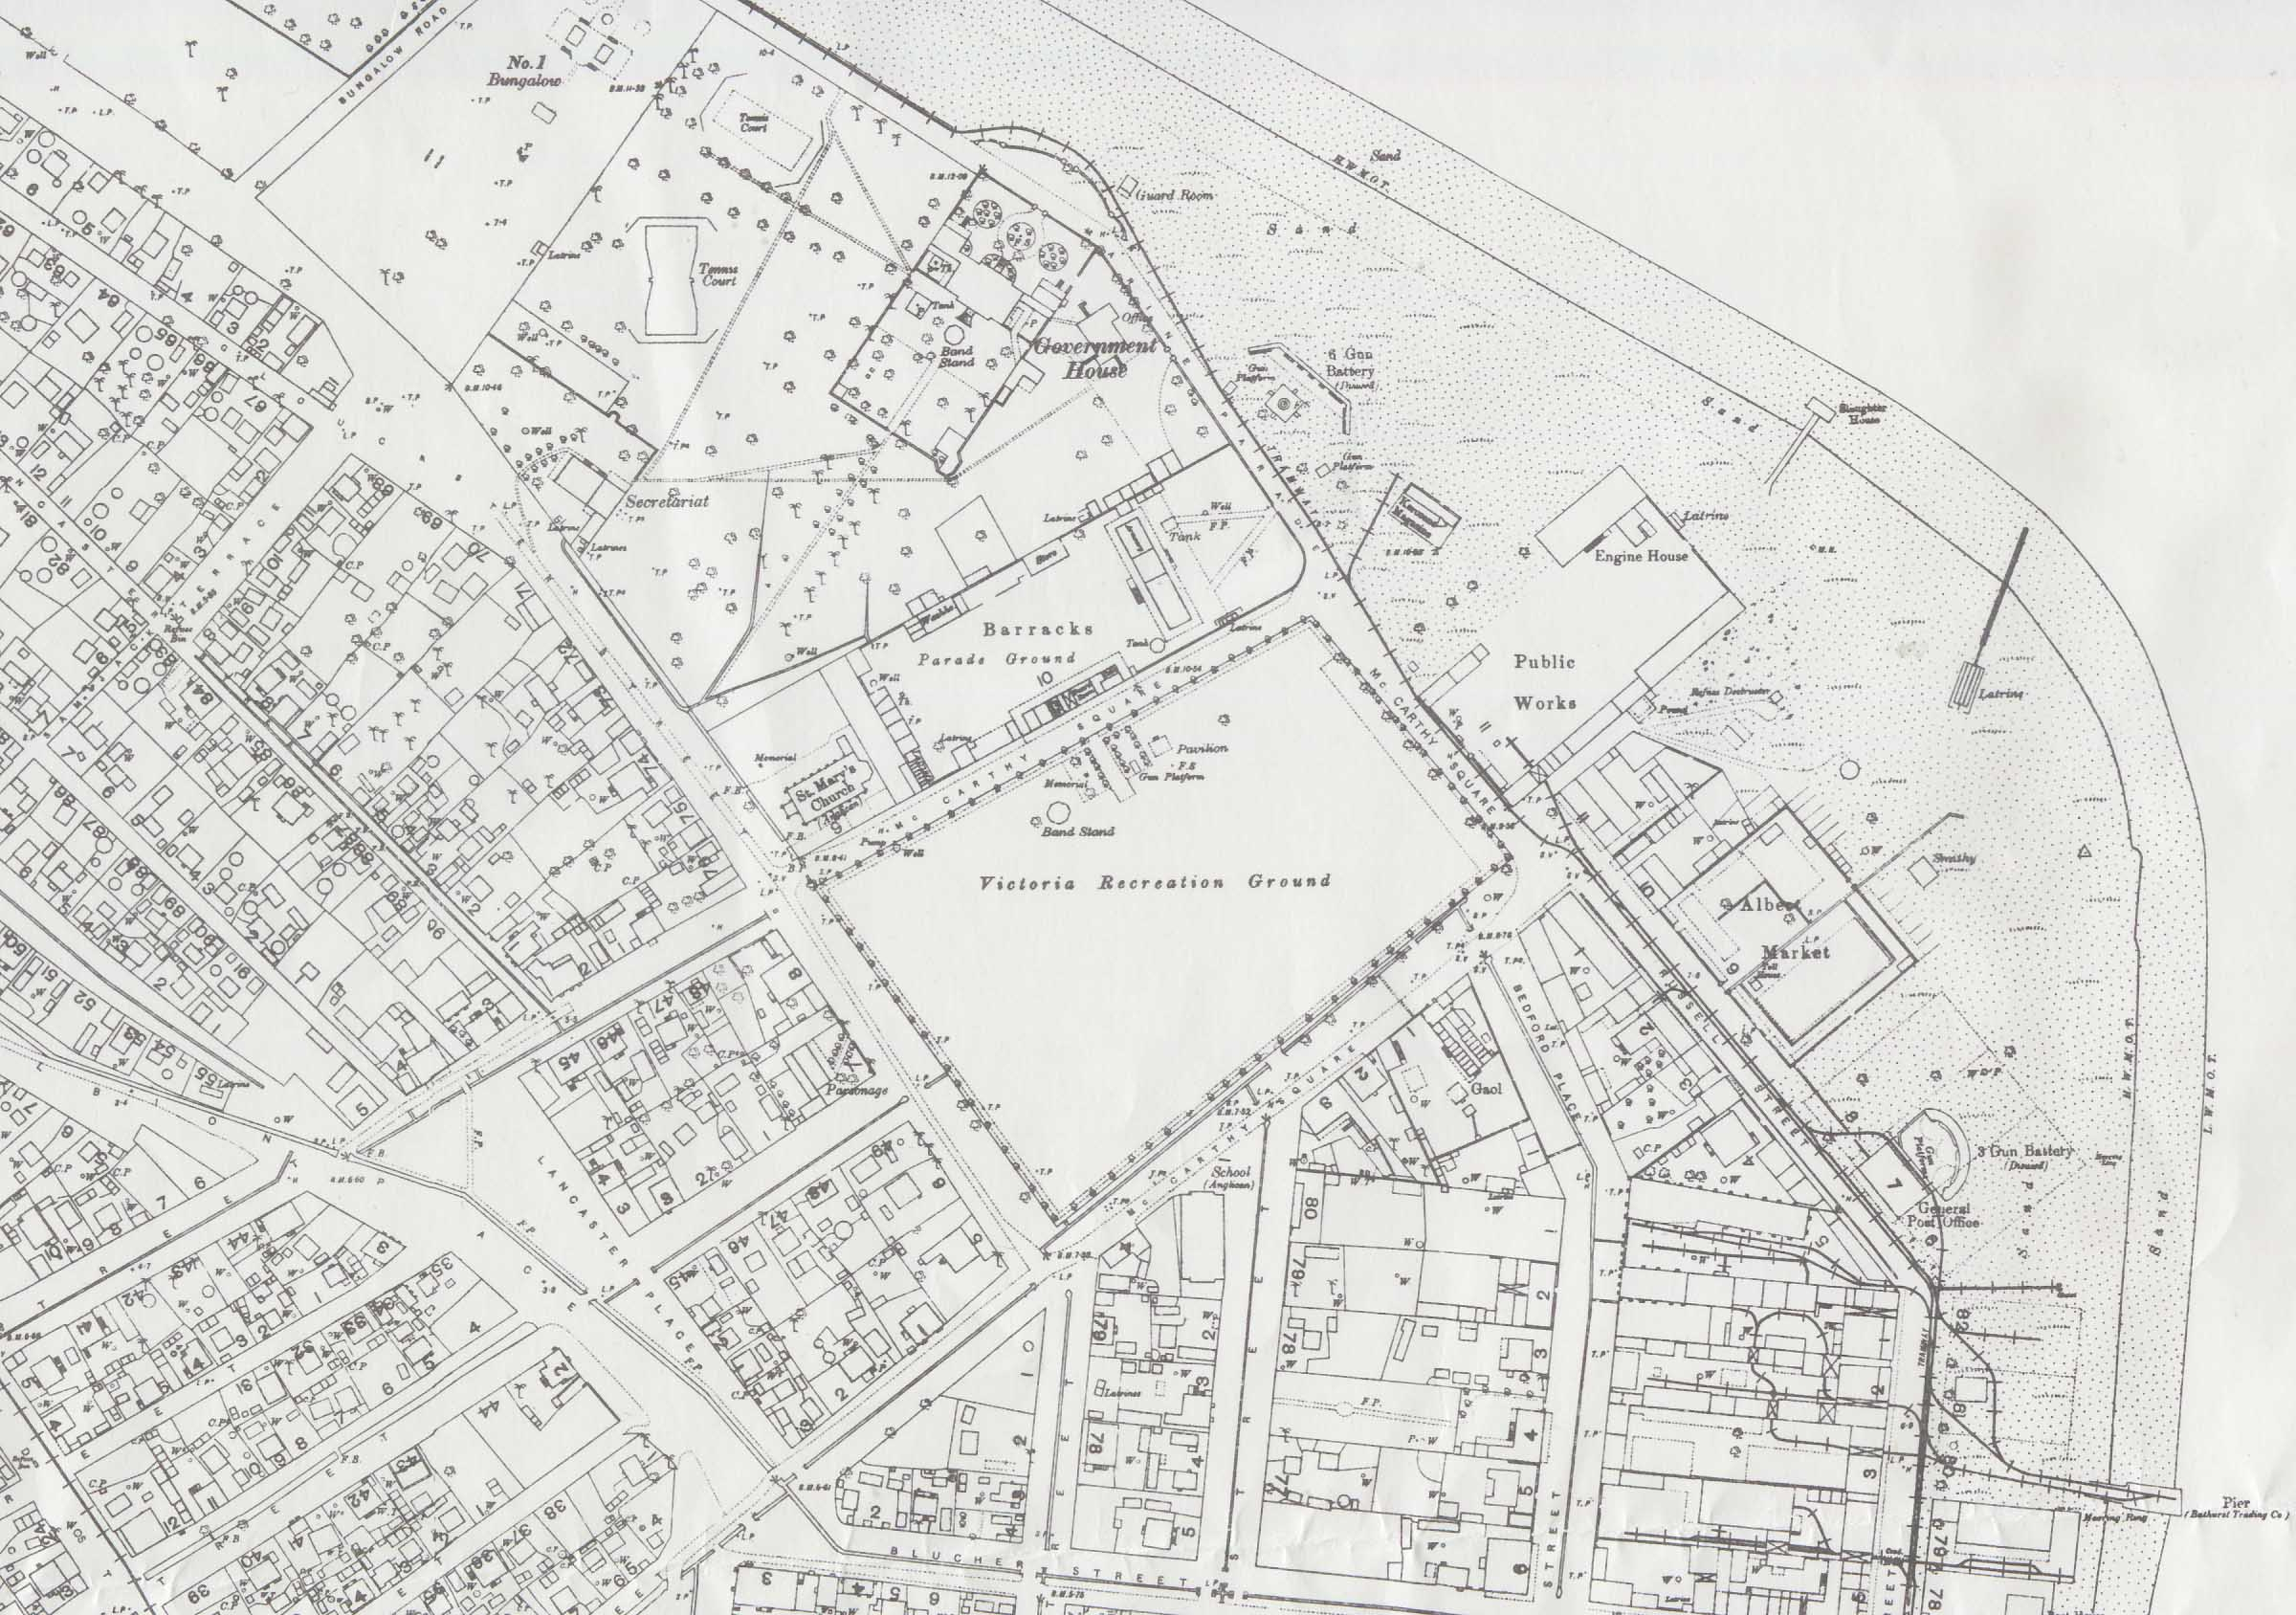 Banjul (Bathurst) City Map, Gambia 1941